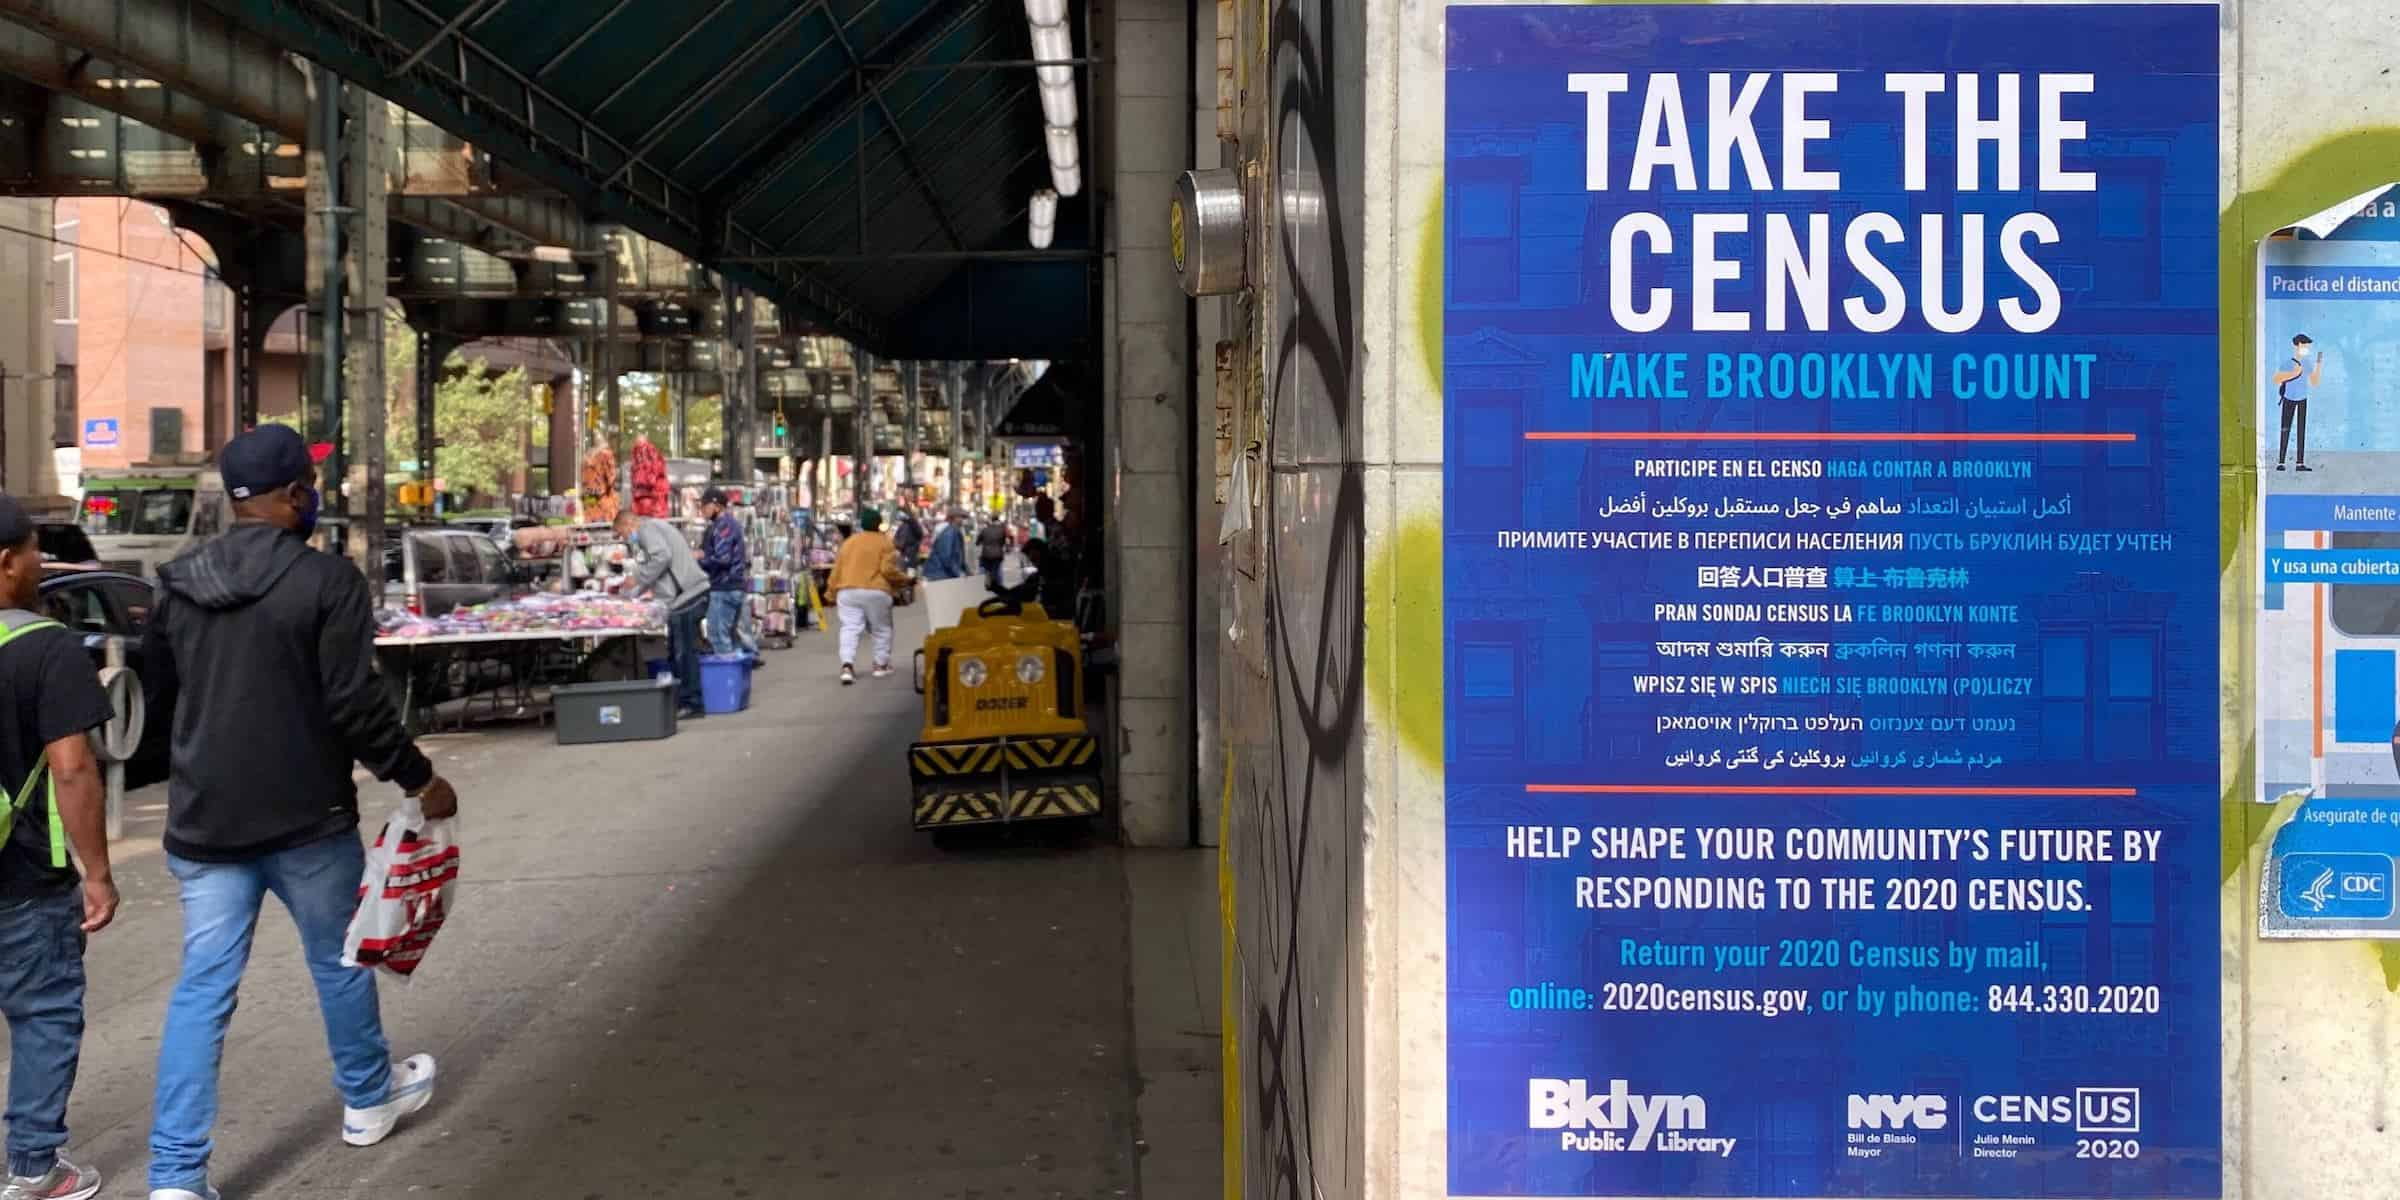 Census Poster Brand Activism Marketing - NYC